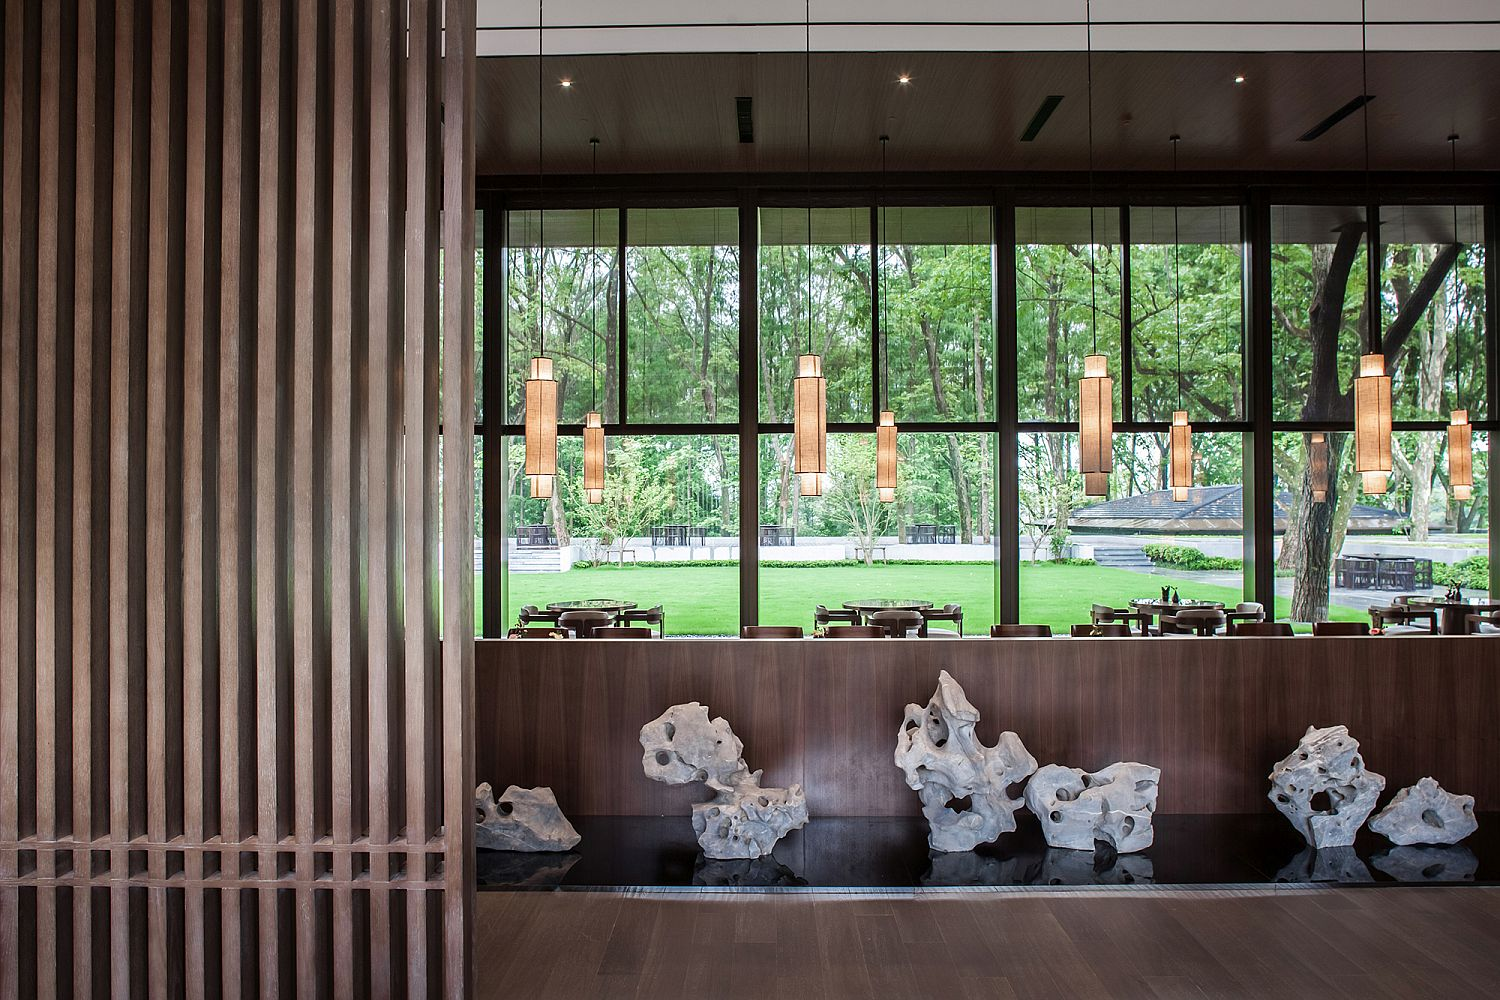 Lantern style lighting and fabulous, natural materials shape the Tea House interior